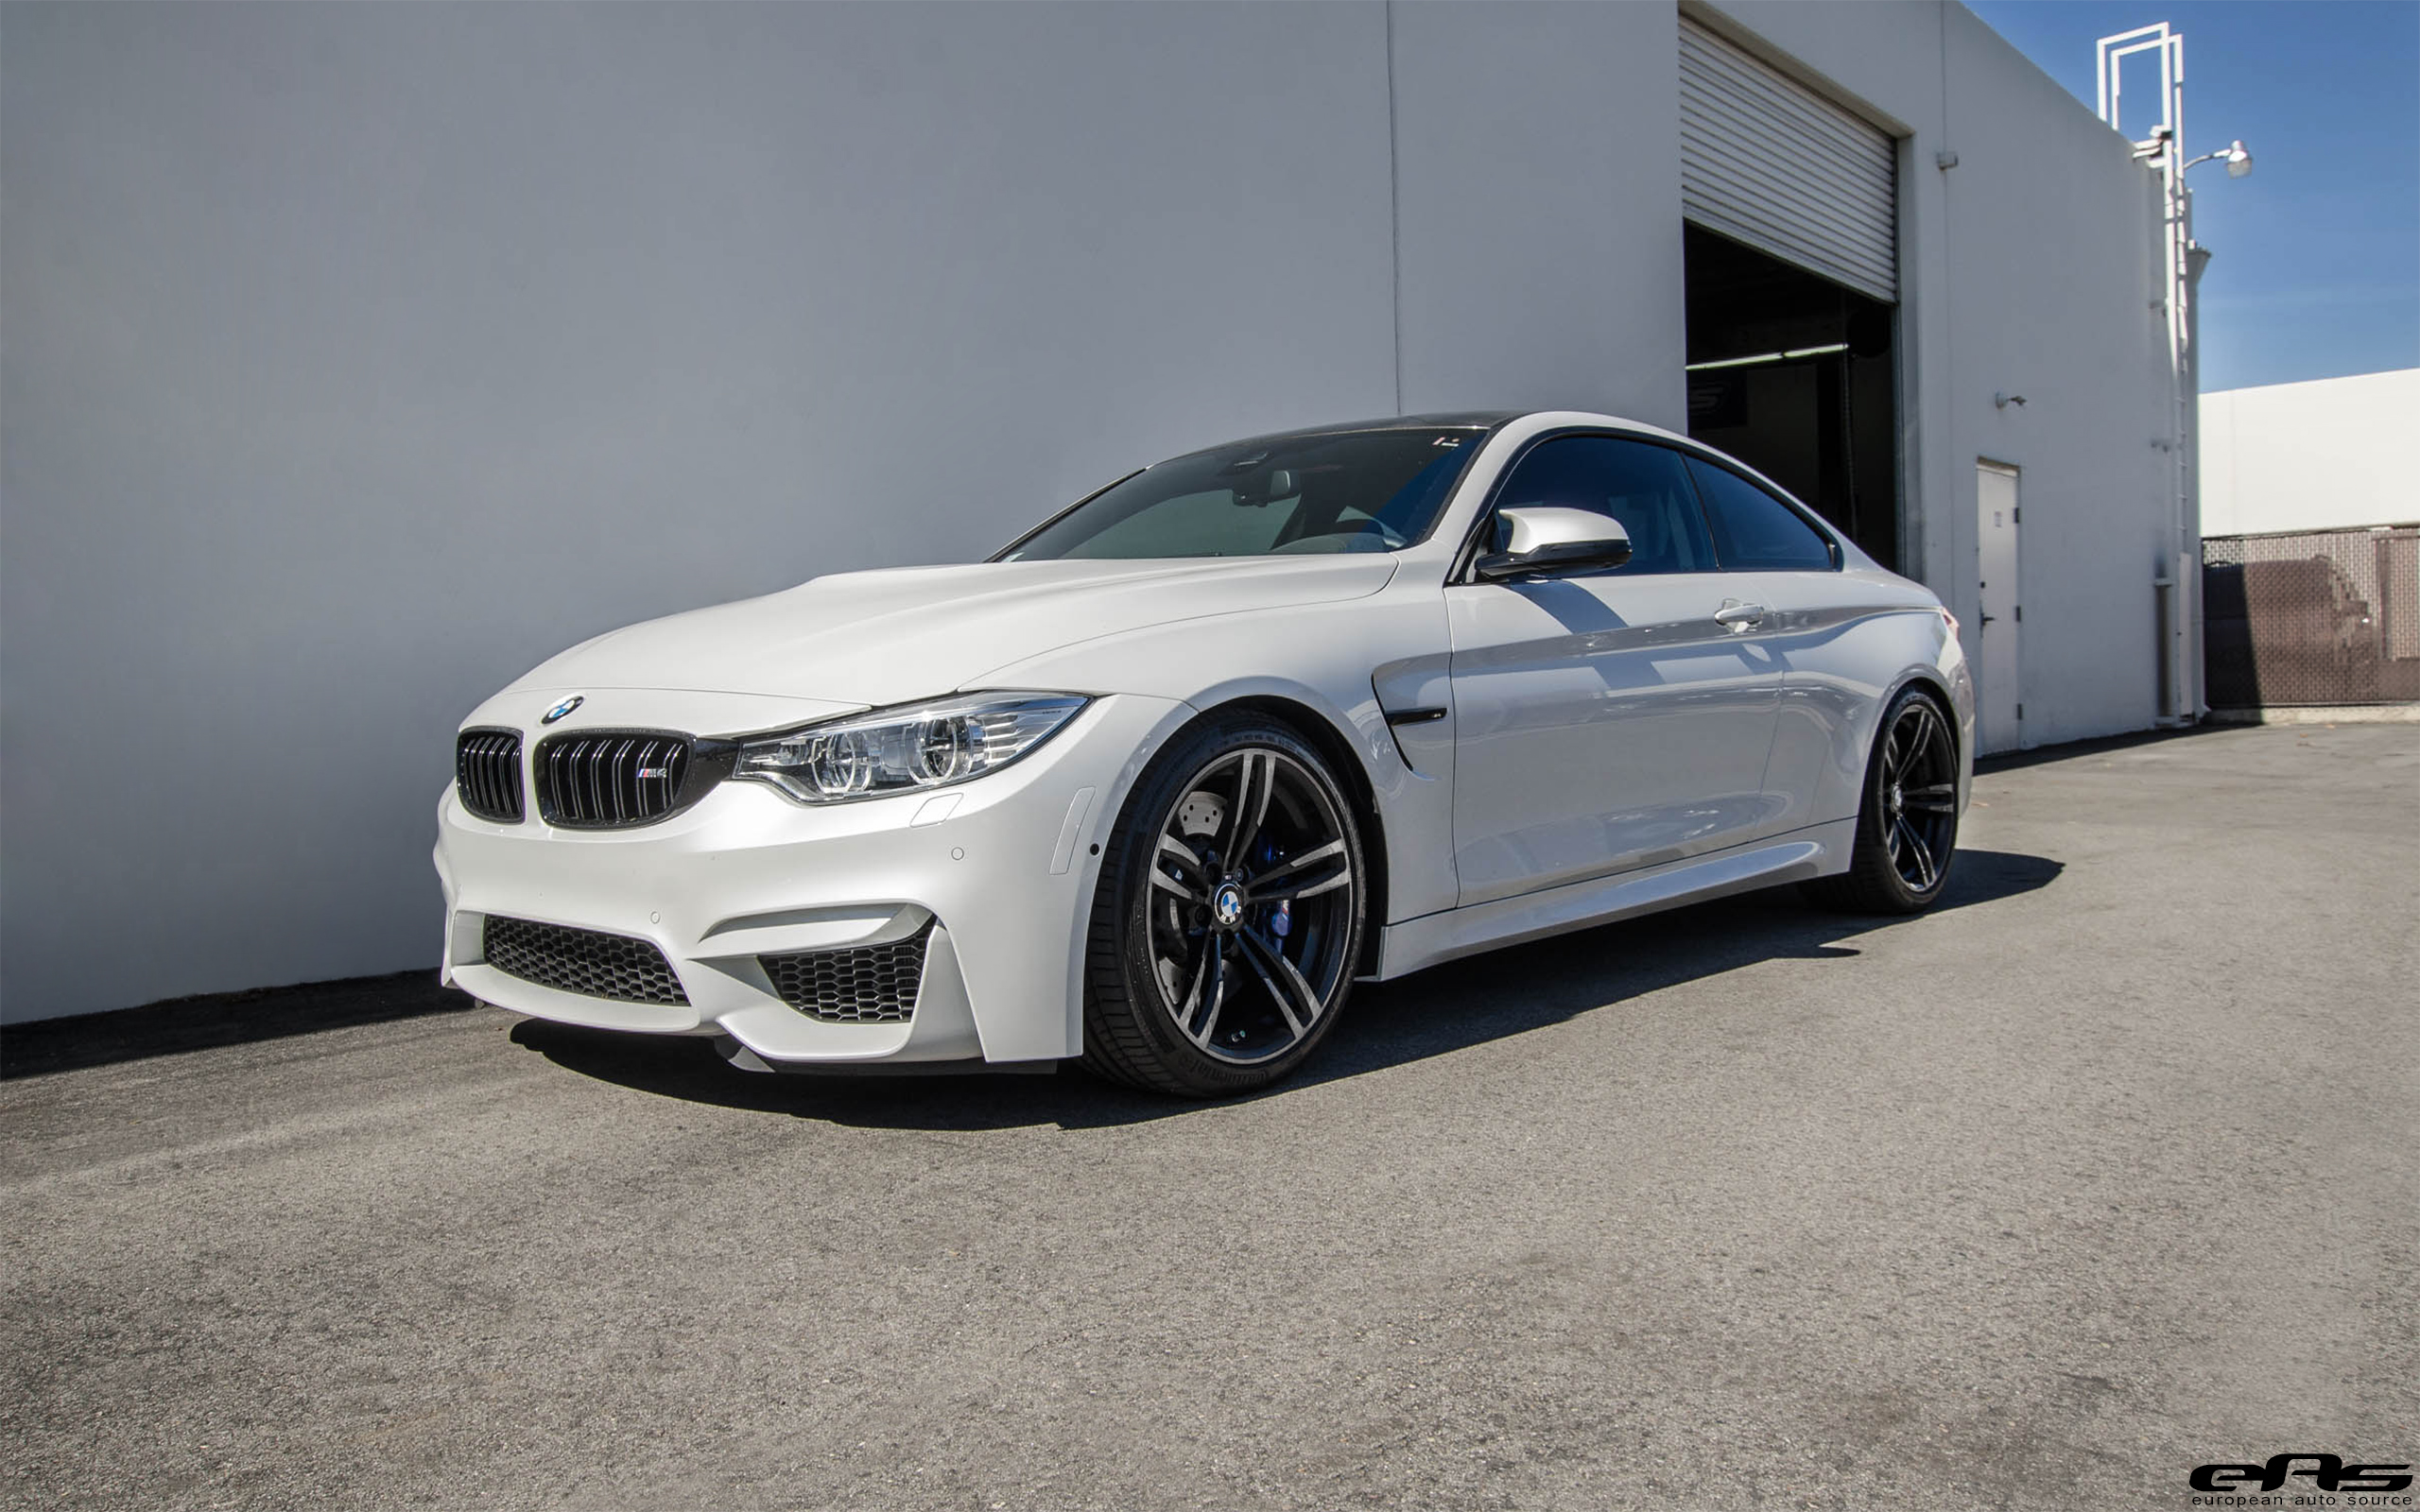 This Bmw F82 M4 Gets A Racing Stance